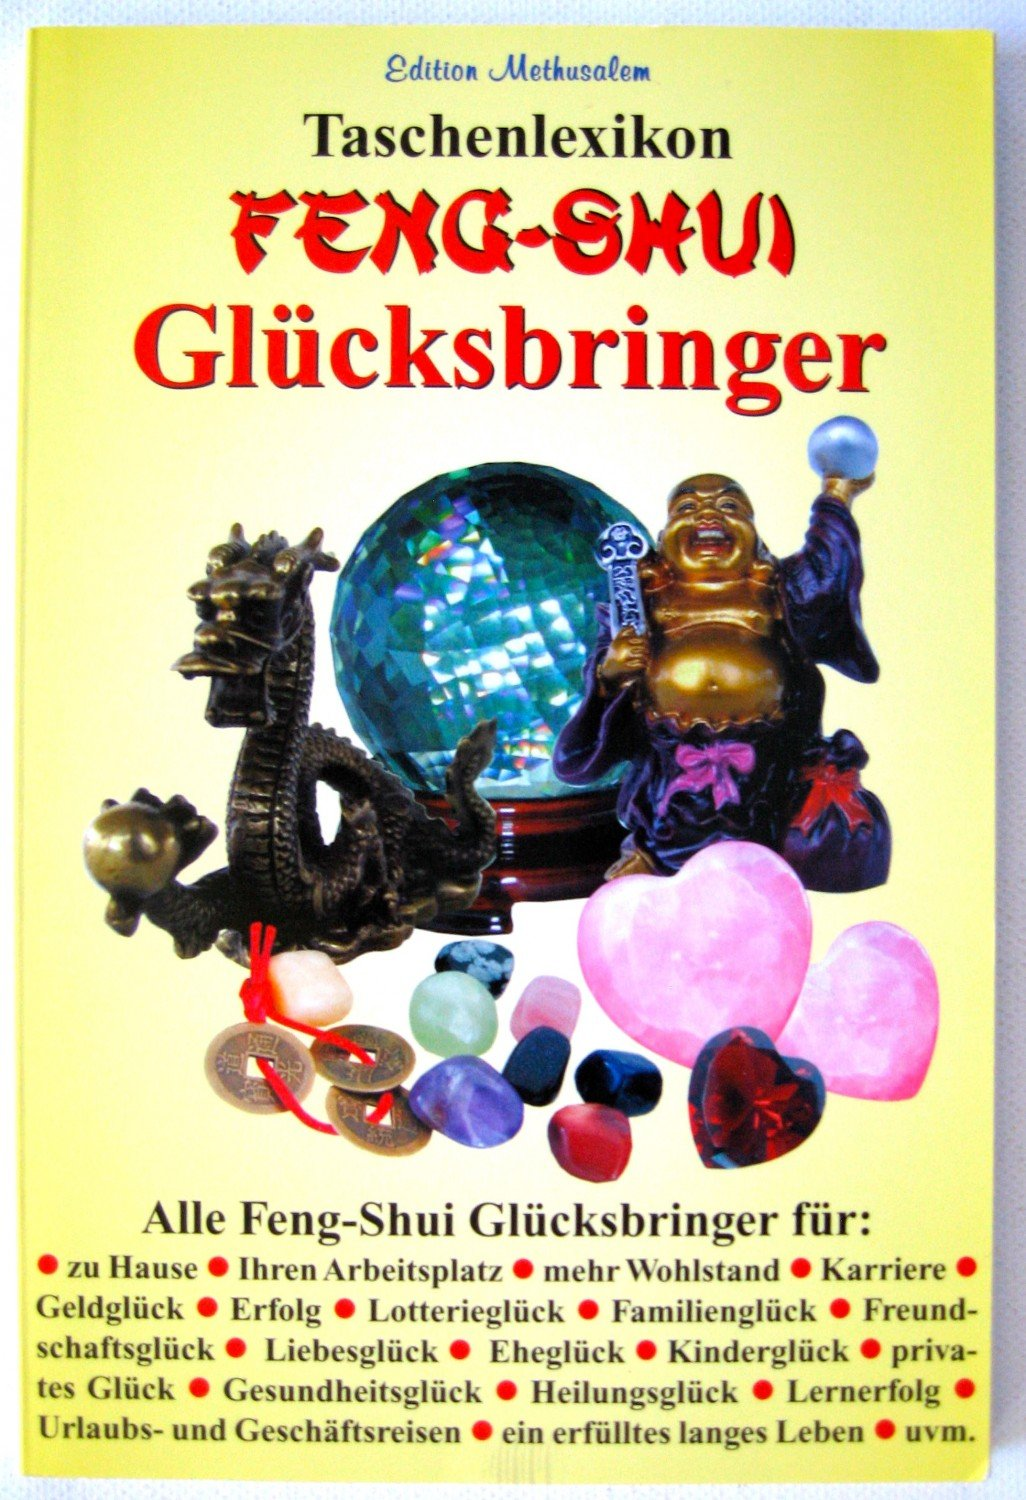 isbn 3980443175 feng shui gl cksbringer taschenlexikon. Black Bedroom Furniture Sets. Home Design Ideas